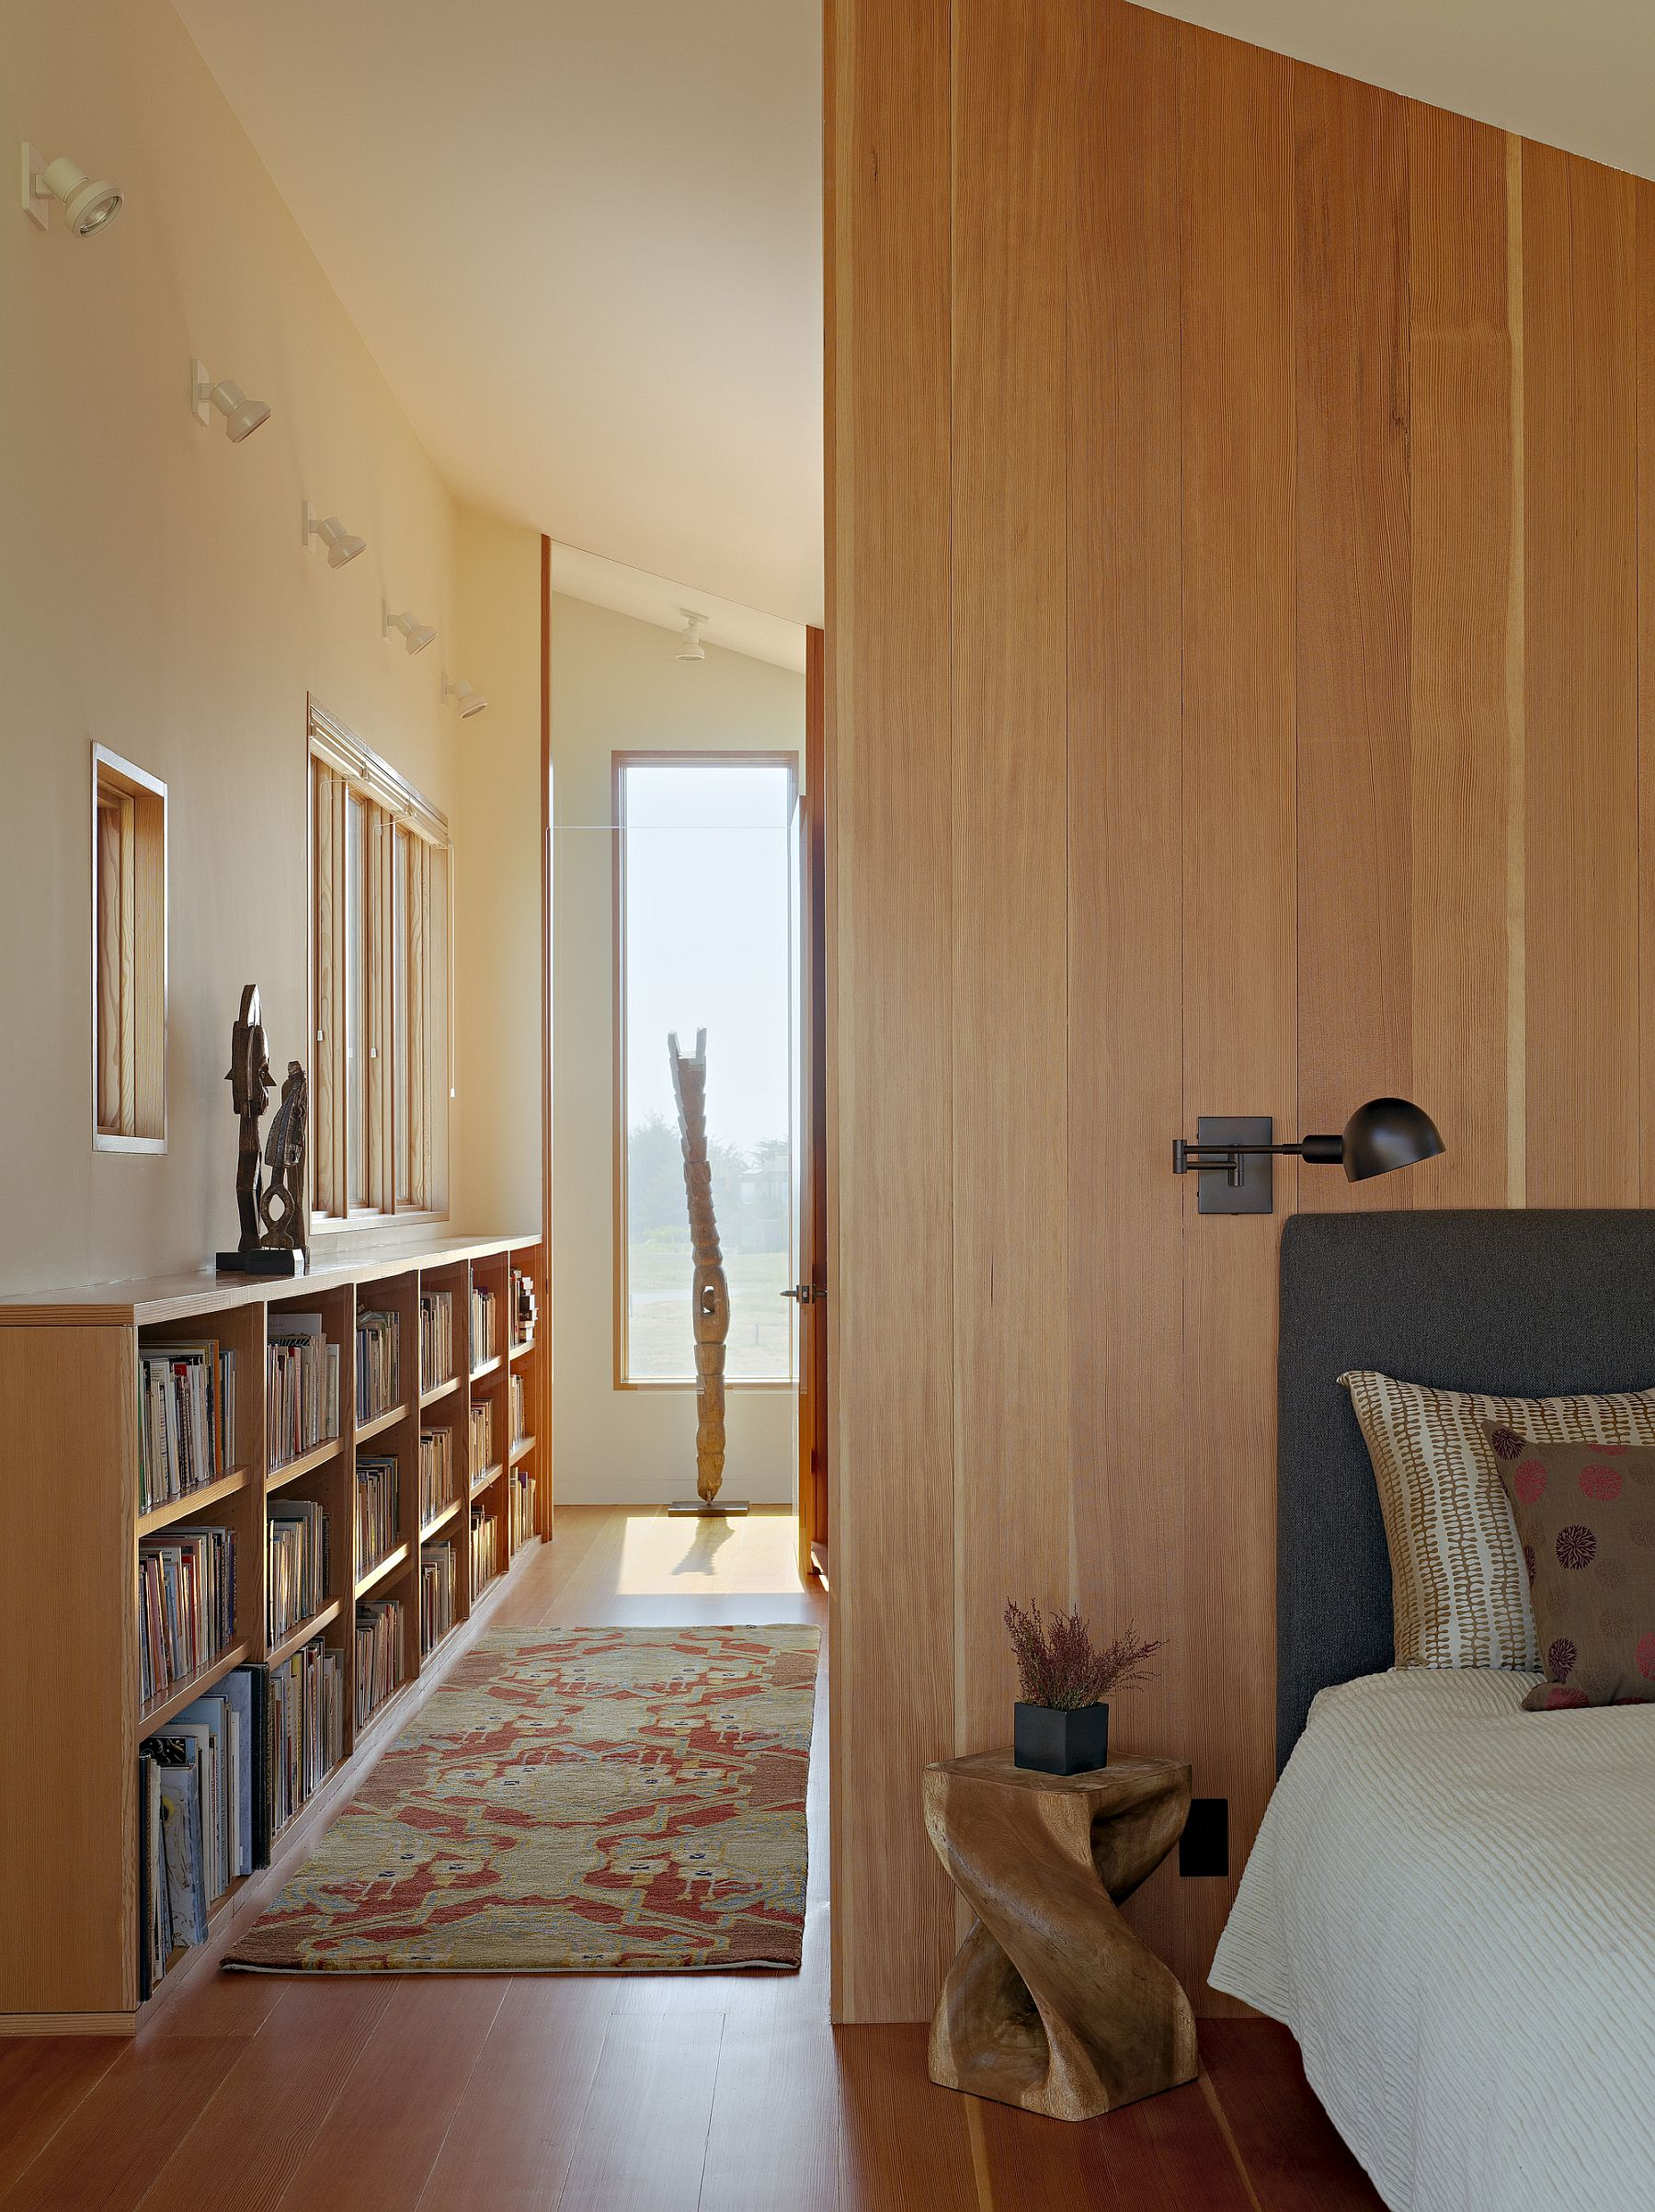 Bookshelves add color and style to the master bedroom